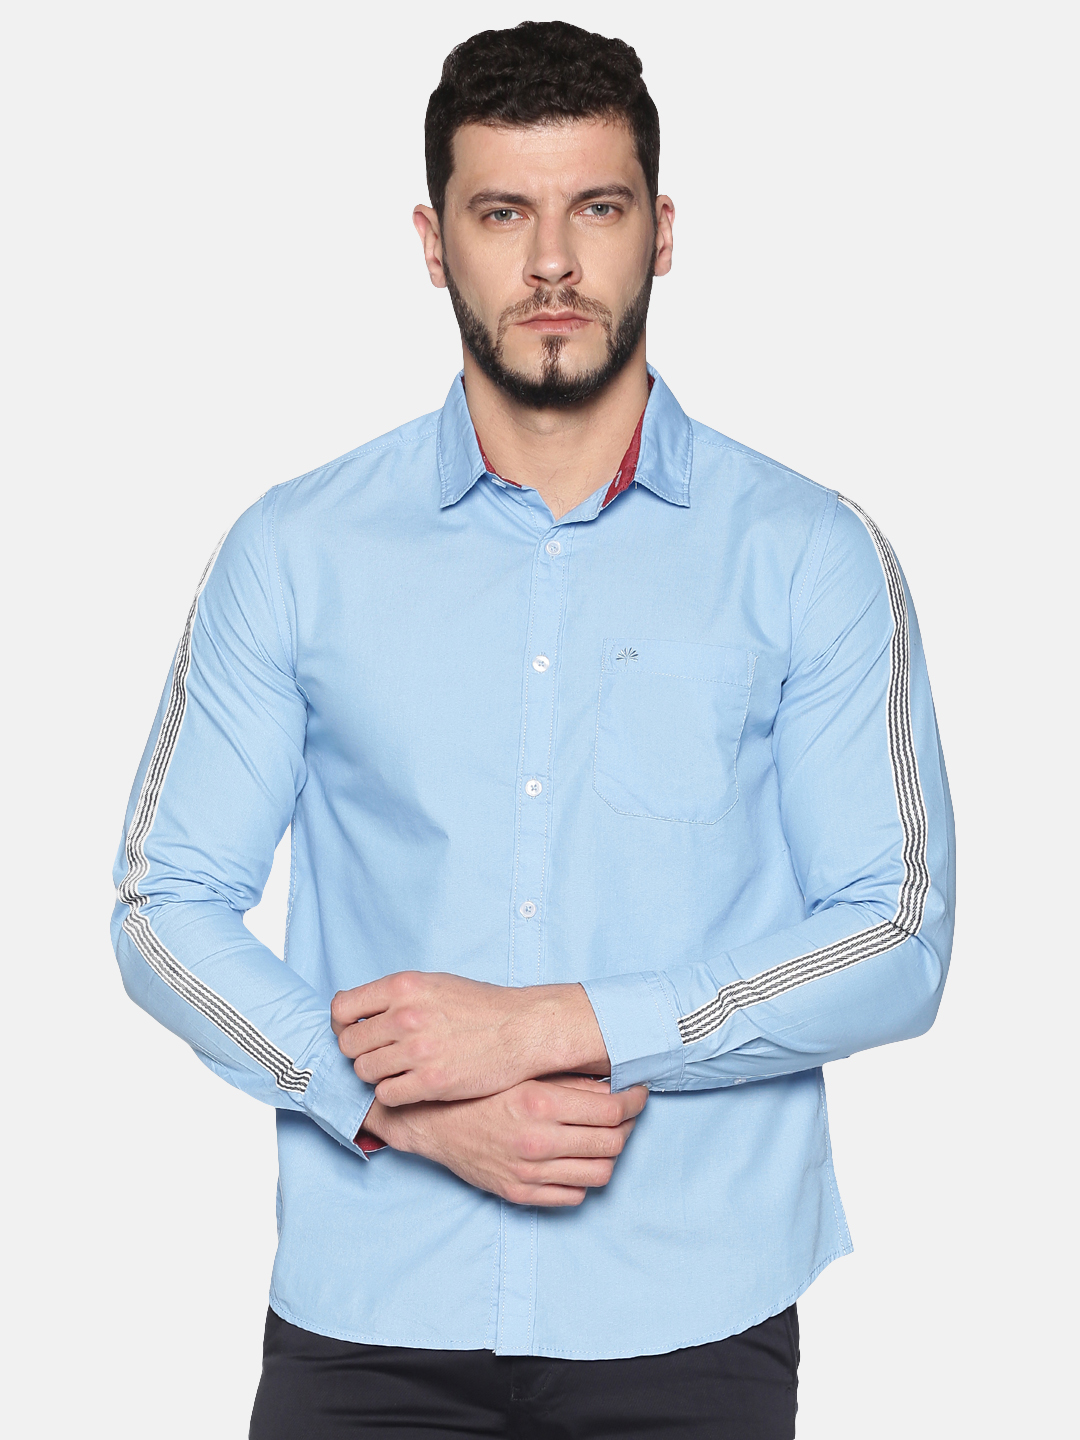 Chennis | Chennis Men's Powder Blue Cotton Casual Shirt With Side Tape on Sleeves